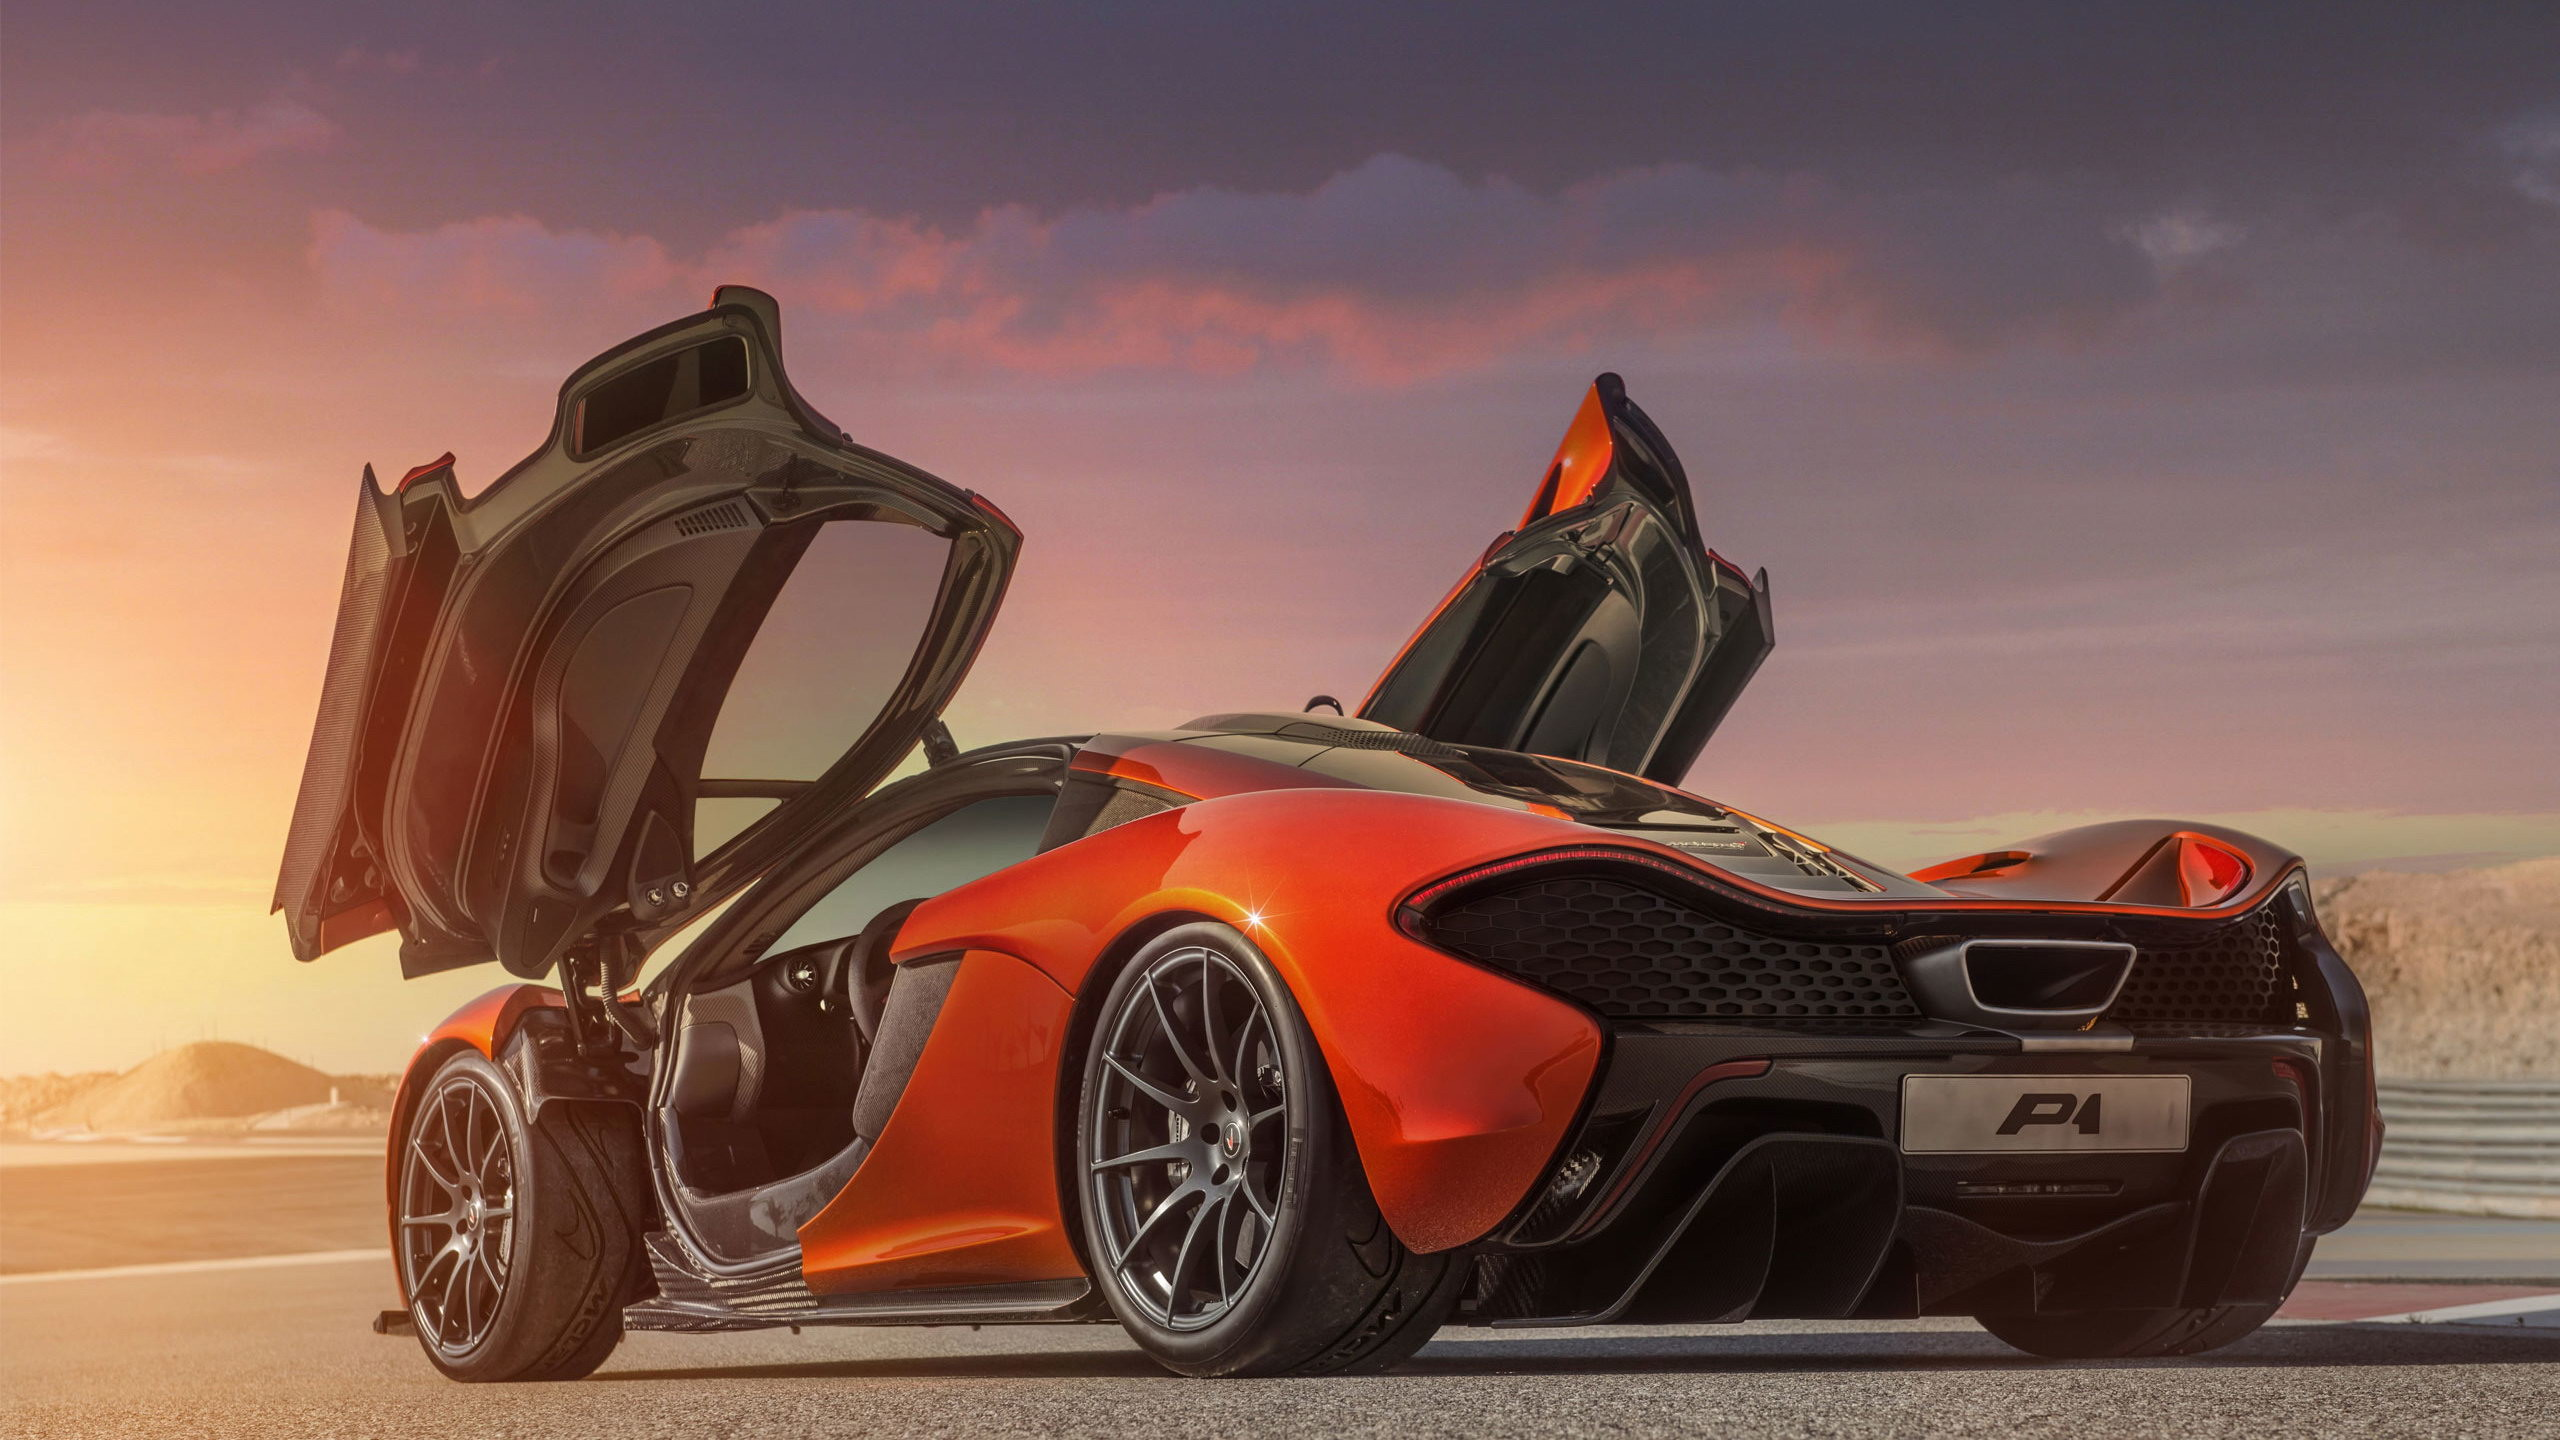 2560x1440 New-Year-Car-Wallpapers-2014-15